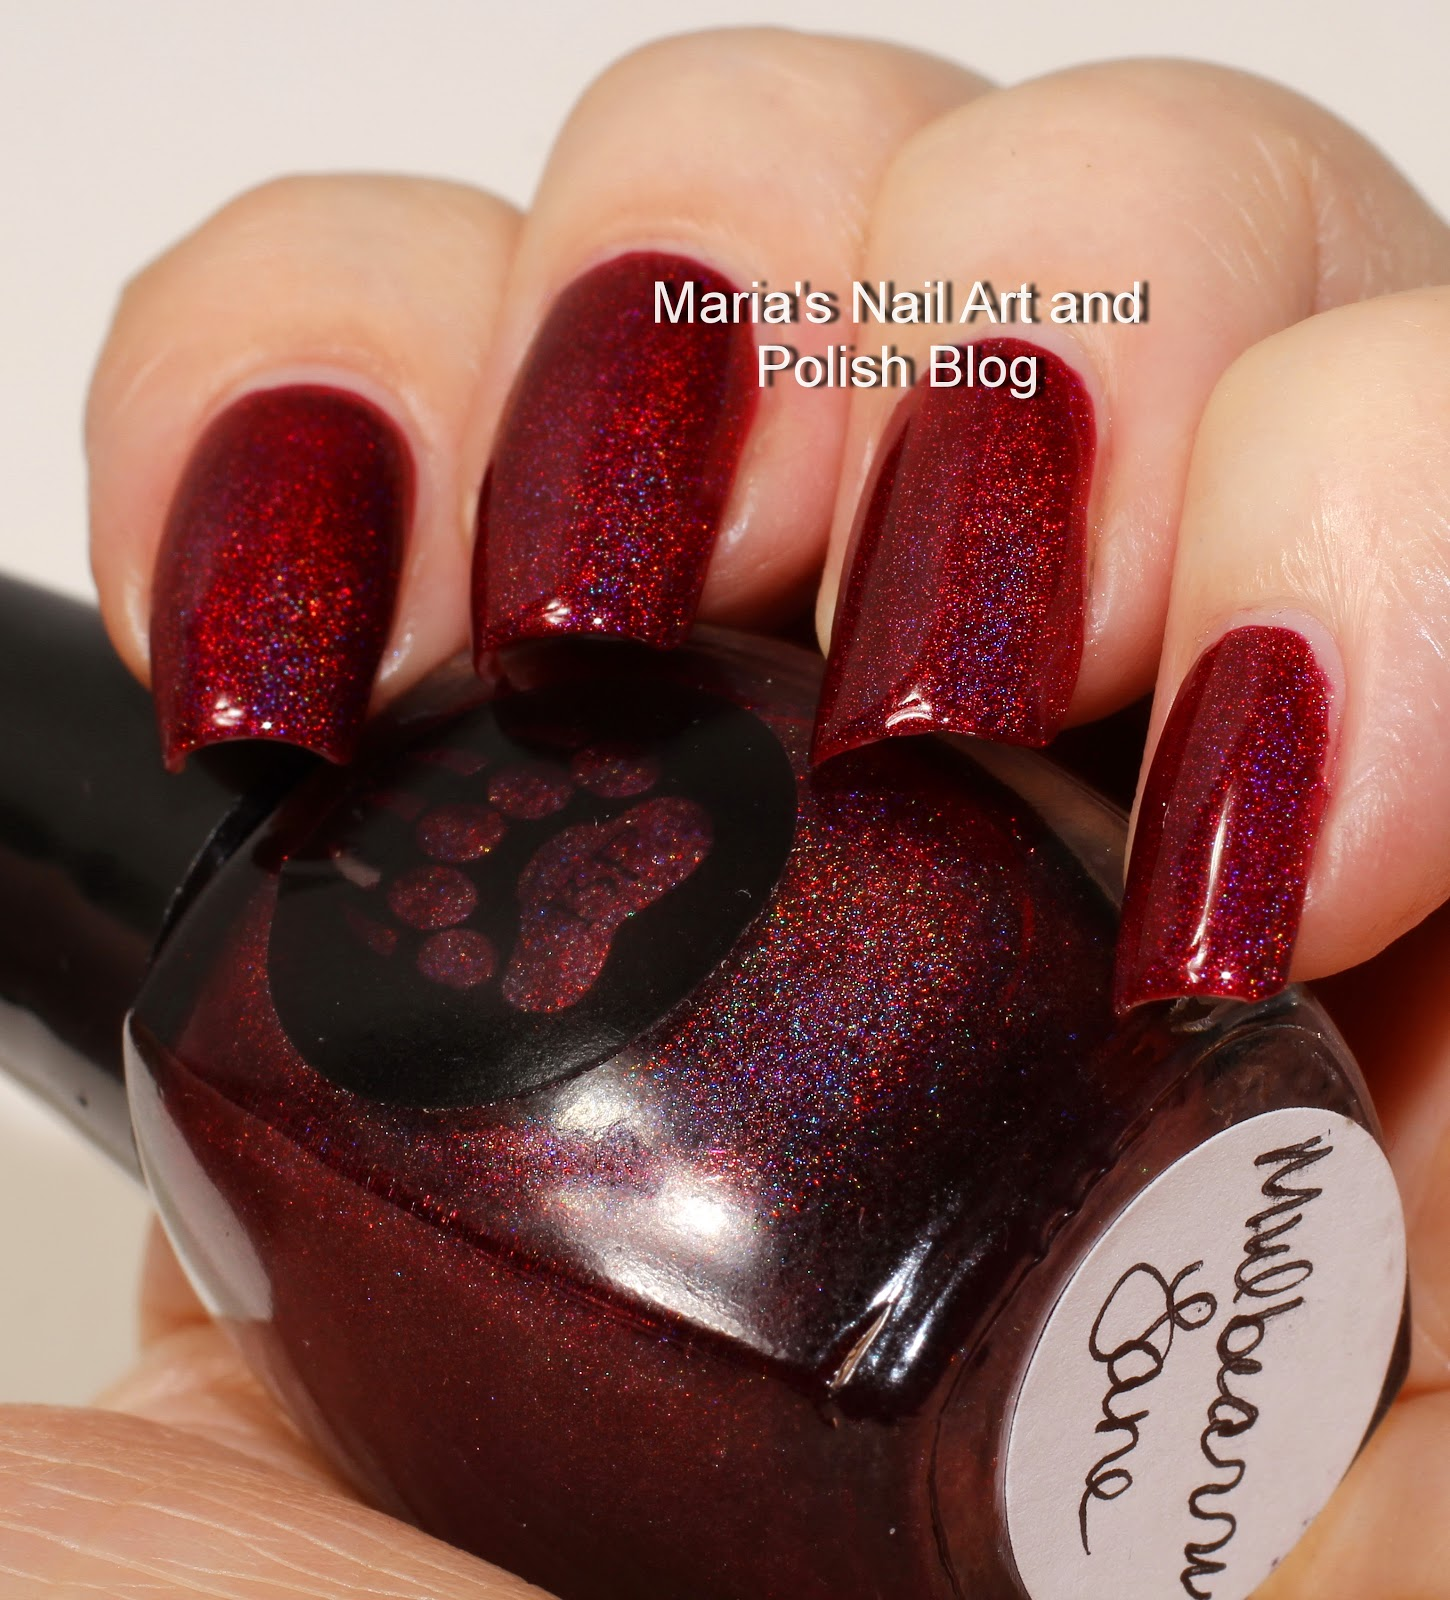 Marias Nail Art And Polish Blog Flushed With Stripes And: Marias Nail Art And Polish Blog: Bear Pawlish Mulbearry